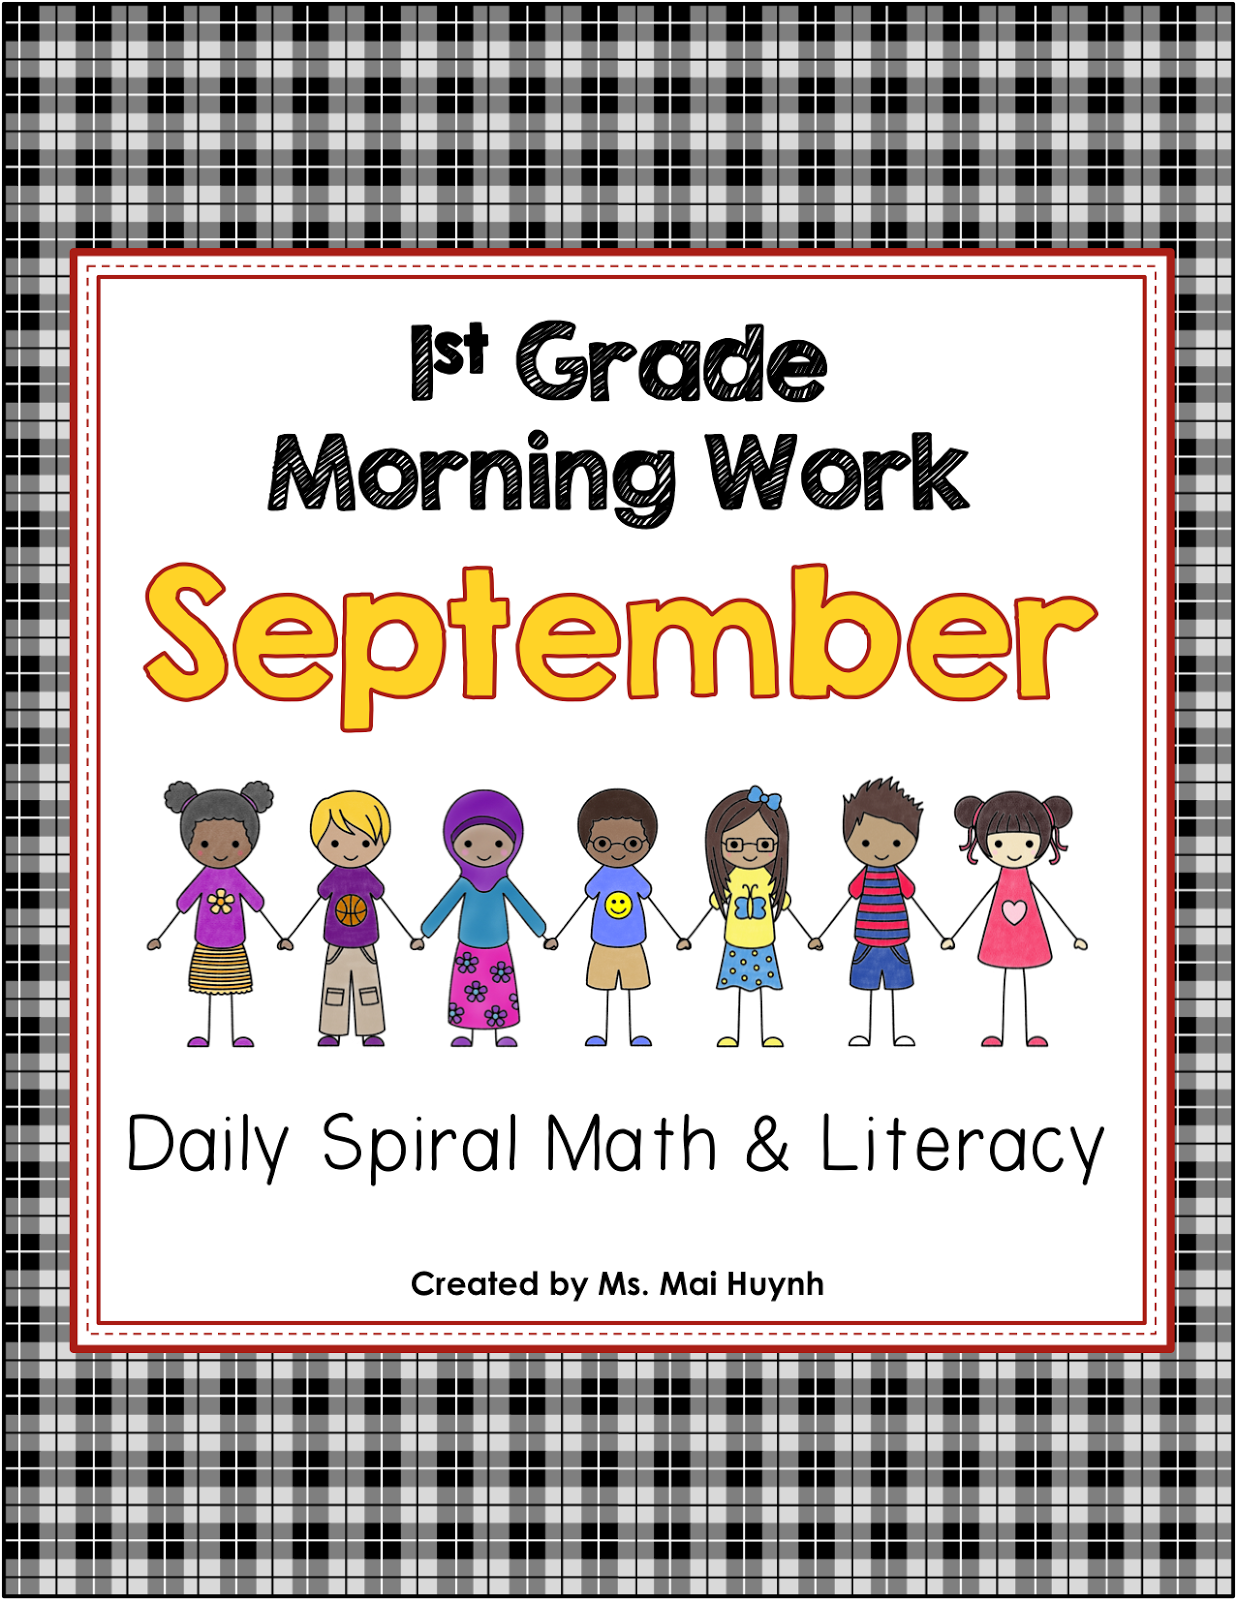 http://www.teacherspayteachers.com/Product/1st-Grade-Morning-Work-1410012